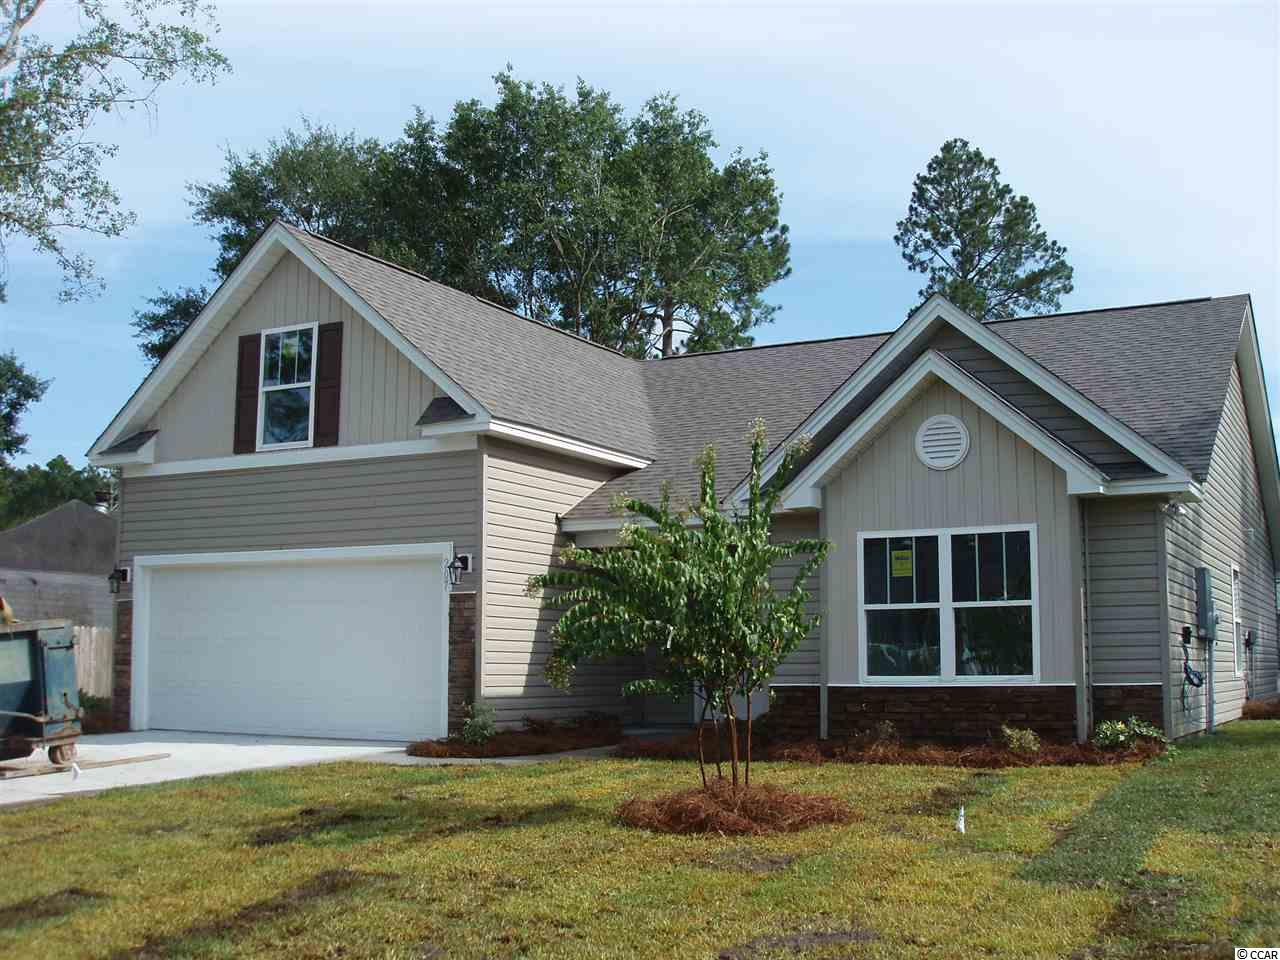 207 Sugar Tree Dr. Myrtle Beach  - Corder Properties Myrtle Beach Real Estate